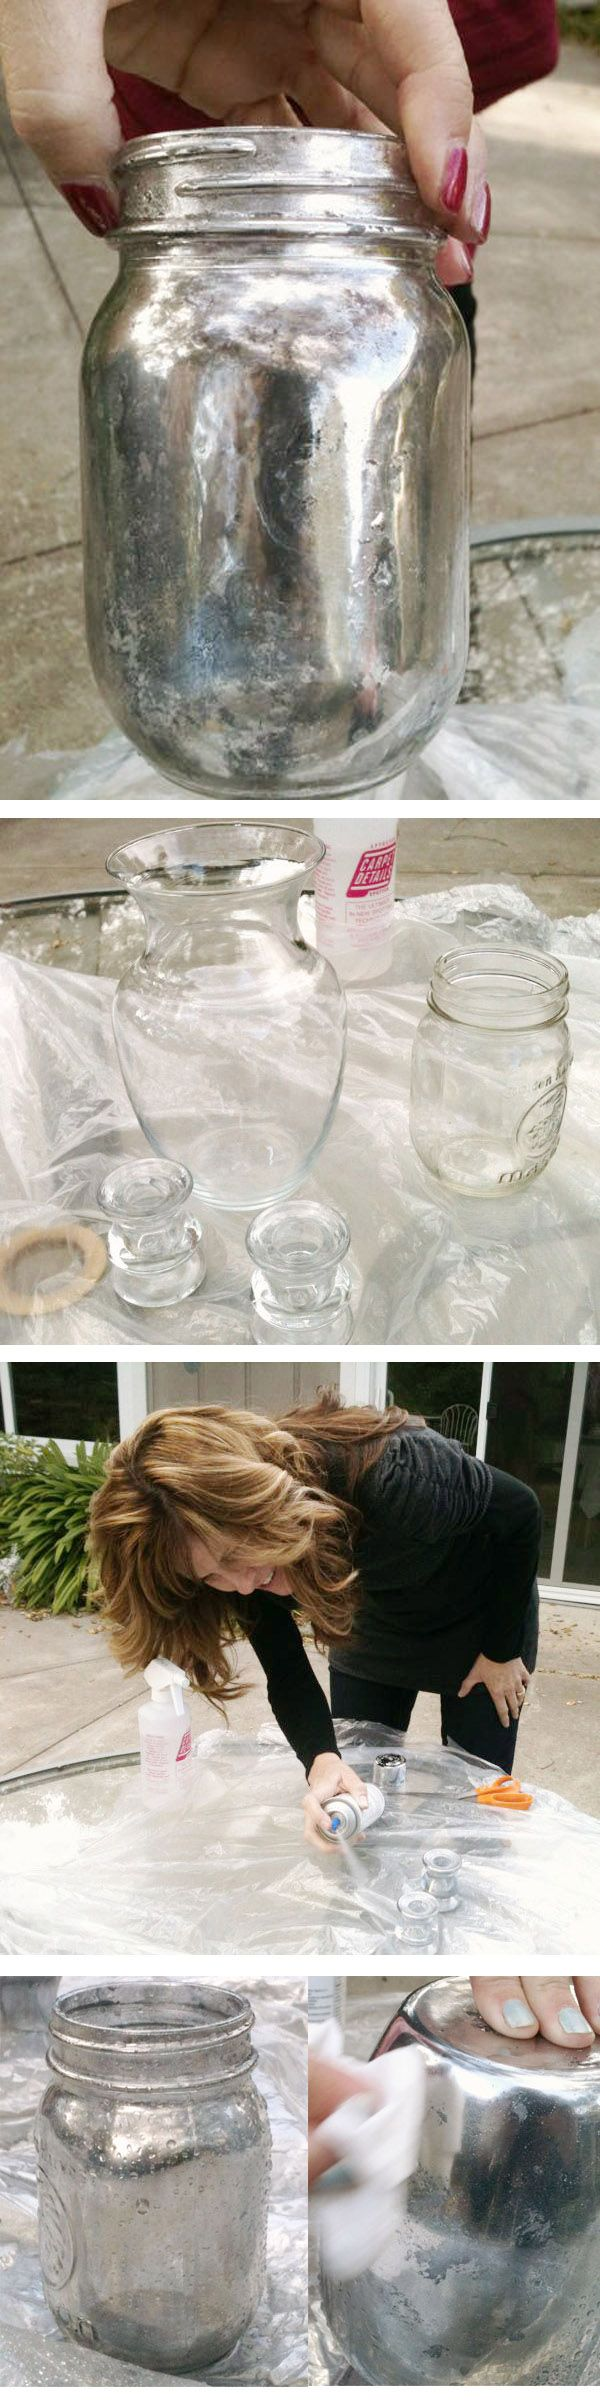 DIY  ::  Mercury Glass look :: glass jar, spray paint, vinegar, water, paper towel  ( http://www.katiesrosecottageblog.com/2012/02/mercury-glass-family-fun.html )